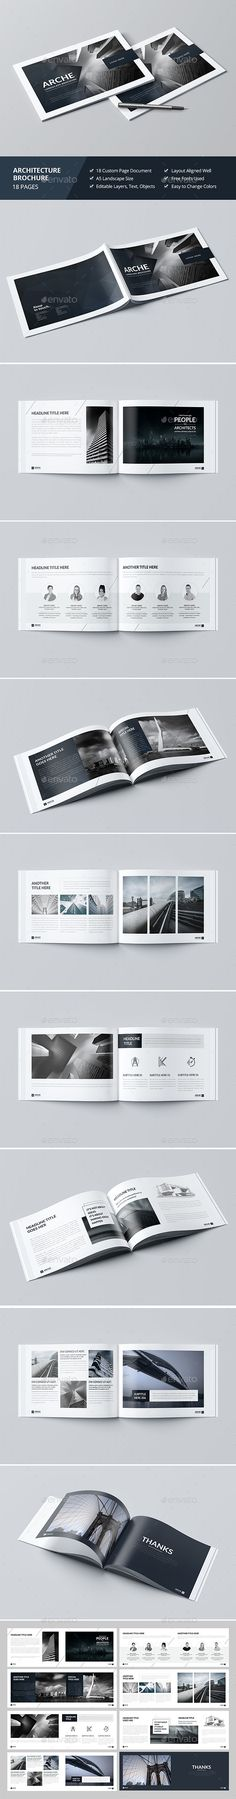 Modern Architecture Brochure 24 Pages A4 \ A5 Template InDesign - architecture brochure template